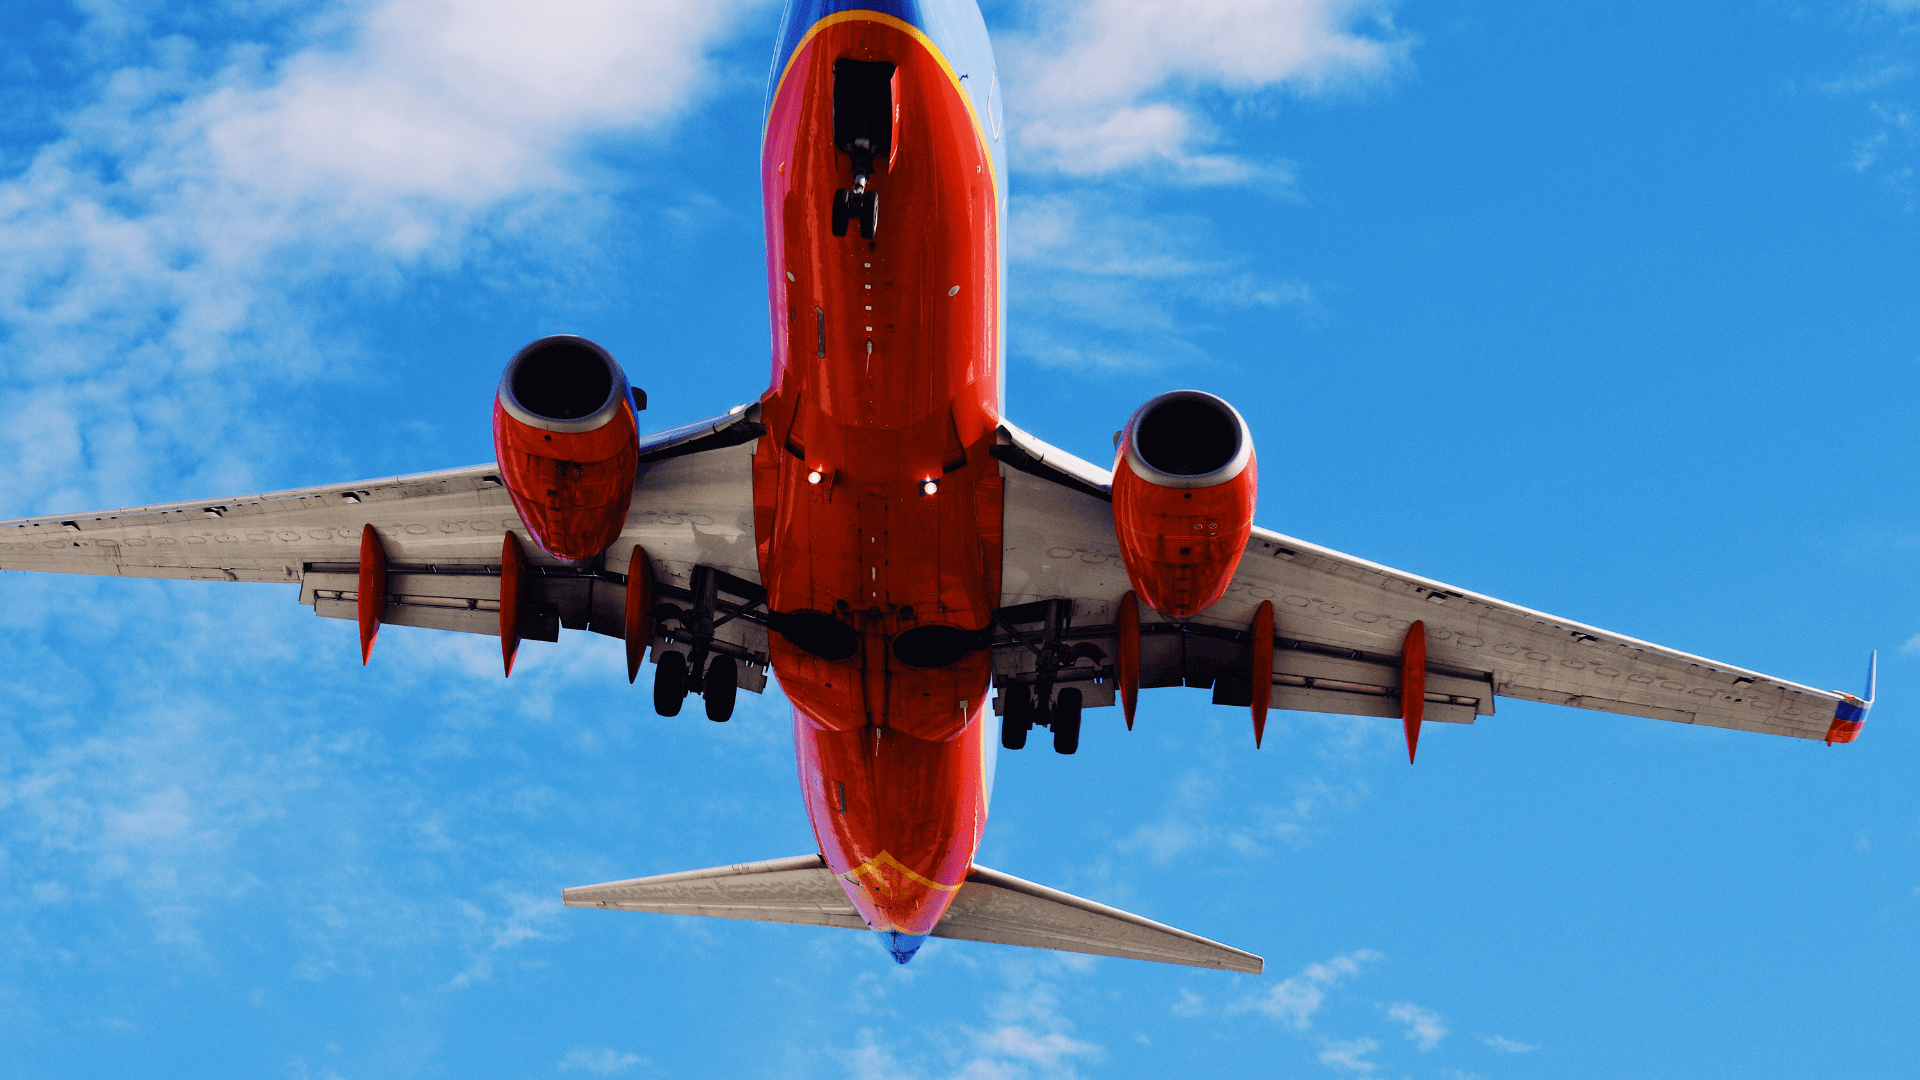 Southwest Airlines just started selling tickets for 2022 travel and its website went down